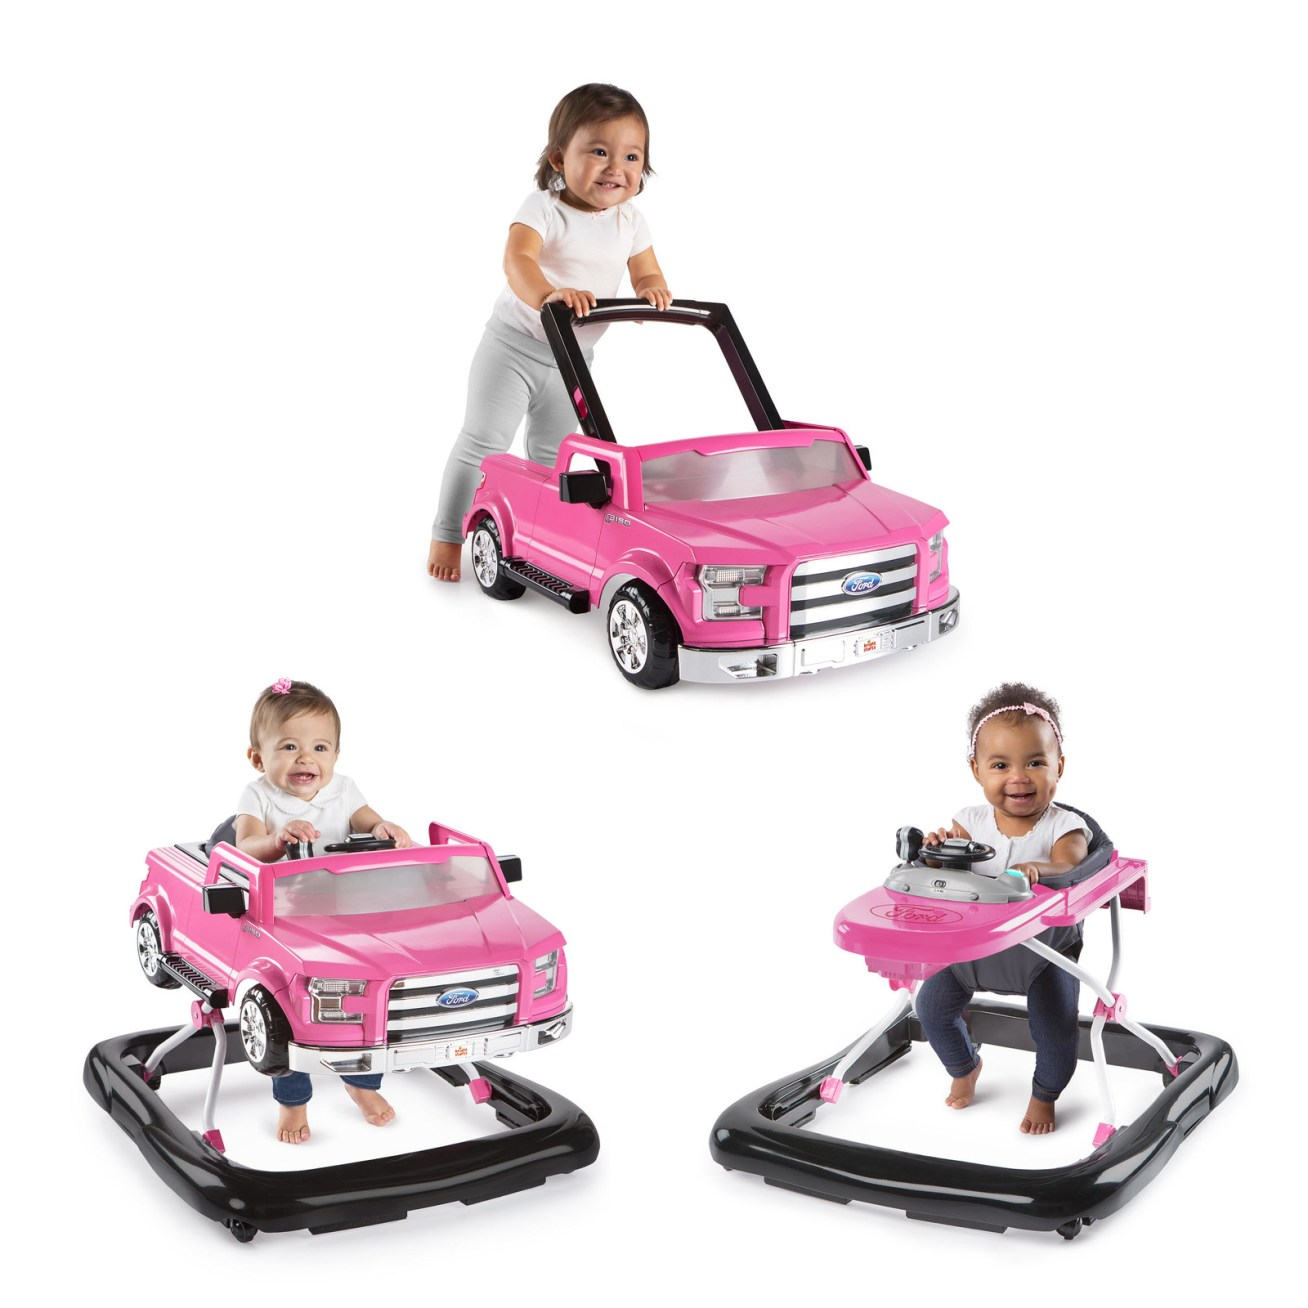 """Promising review: """"This walker should definitely be on your list! It was easy to set up and my little one loved taking it for a 'test drive' right away! Its features are great, with three different height levels and multi-functional use. It's great to put her down and watch her be easily entertained. I highly recommend this product!"""" —Nunez92Price: + (available in three colors)"""